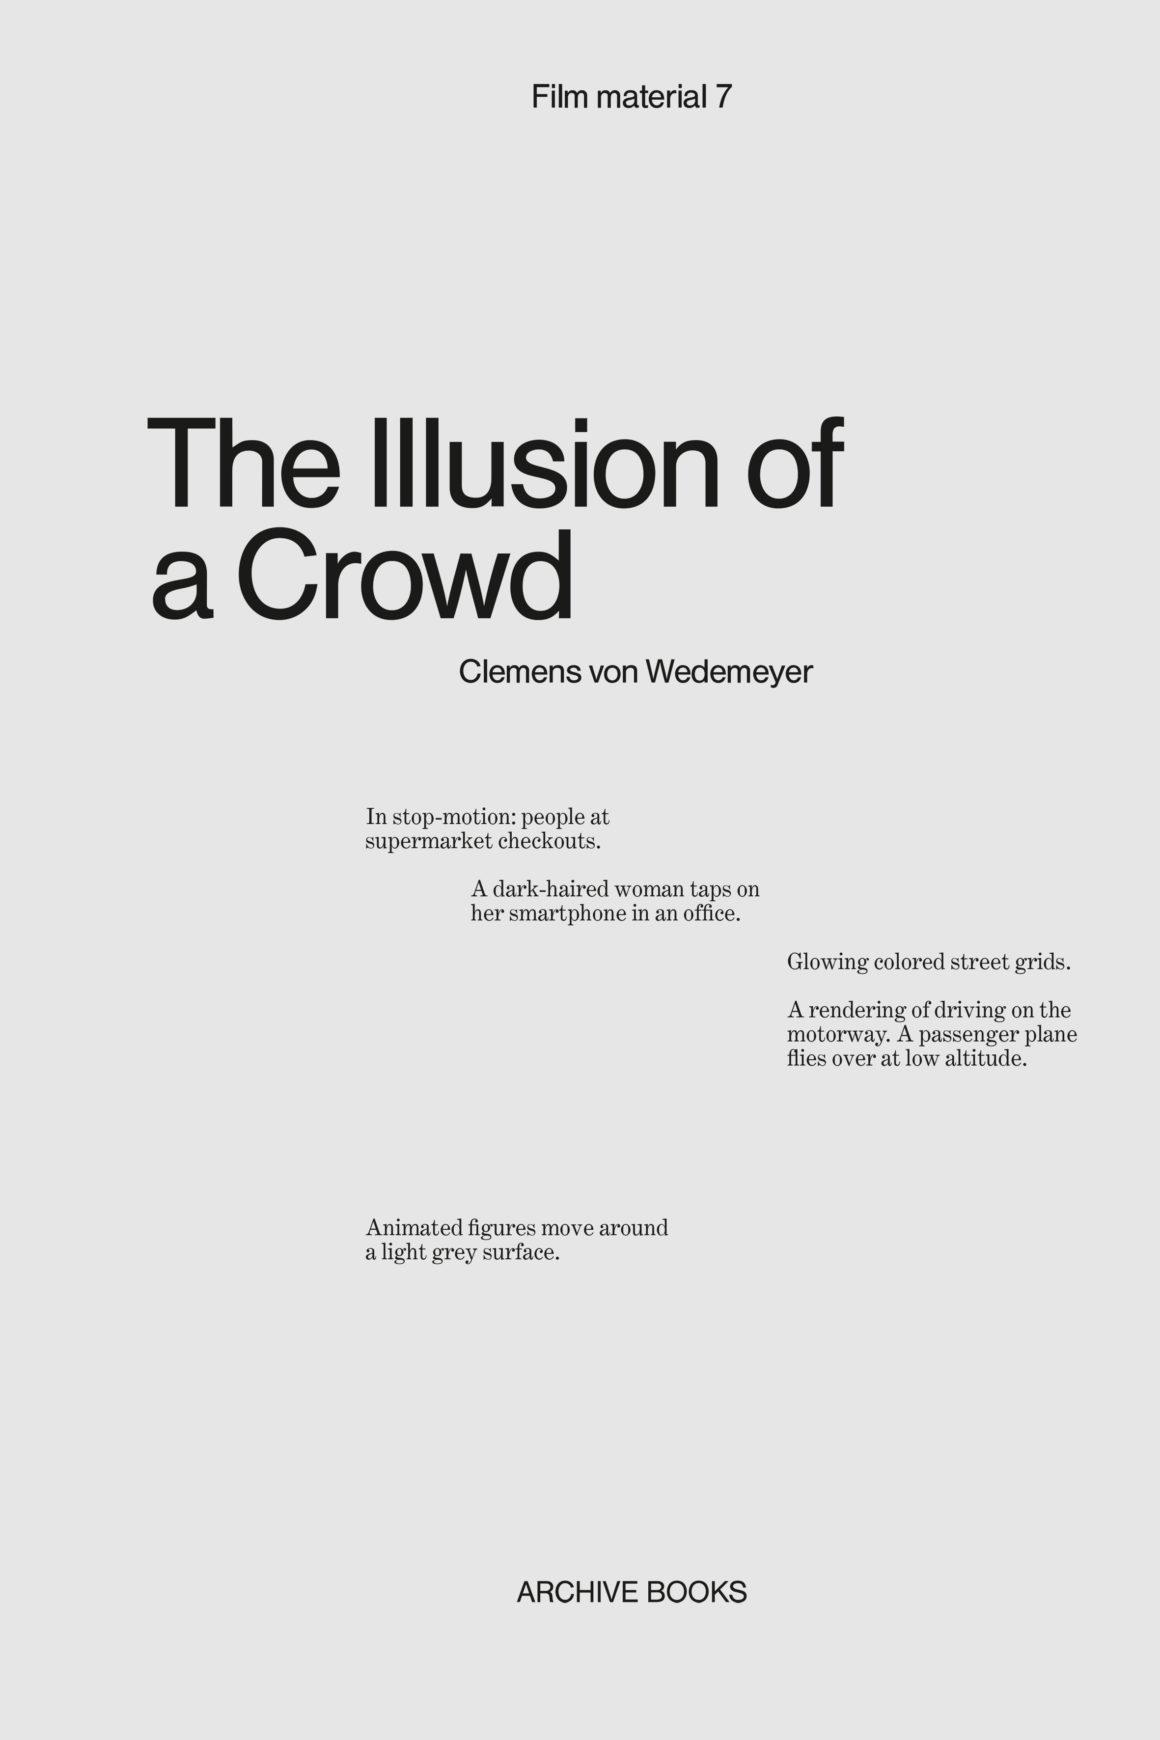 The Illusion of a Crowd